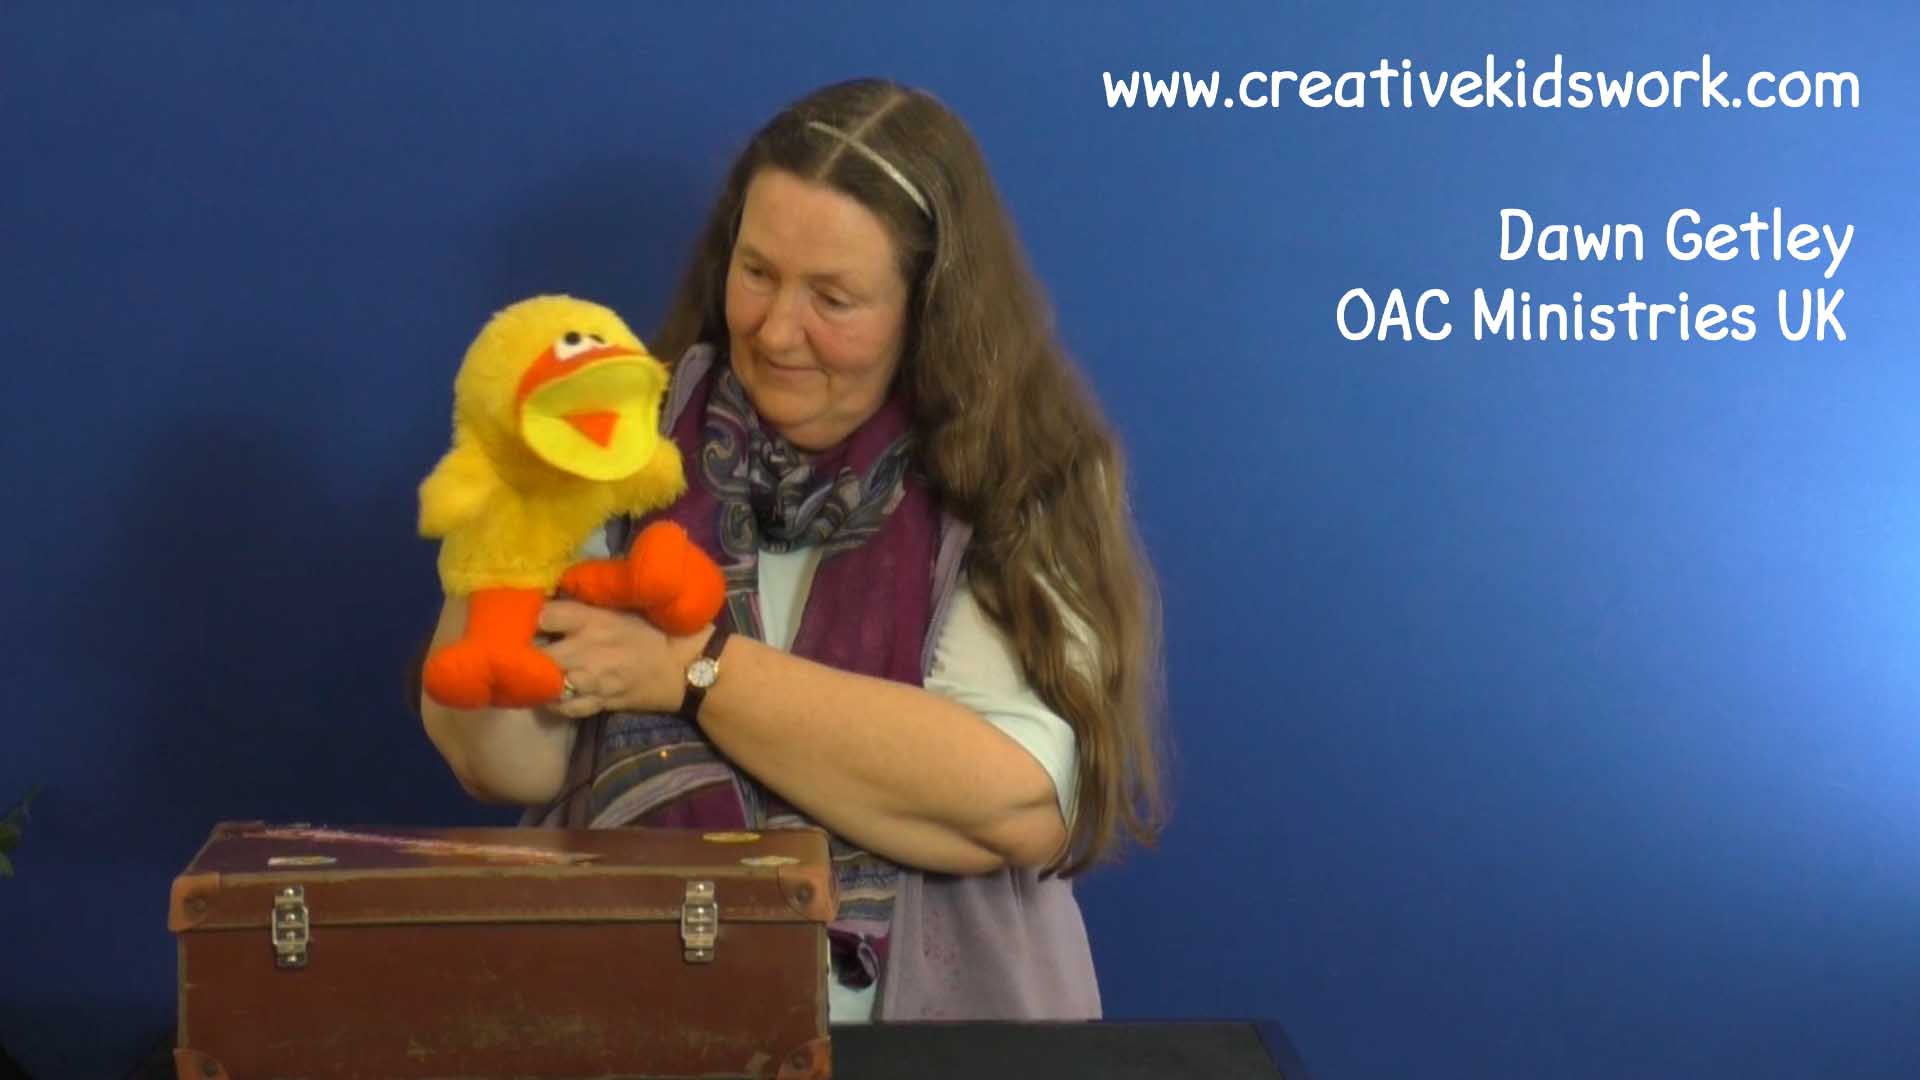 Dawn Getley does a ventriloquist act with her cute duck Aqua